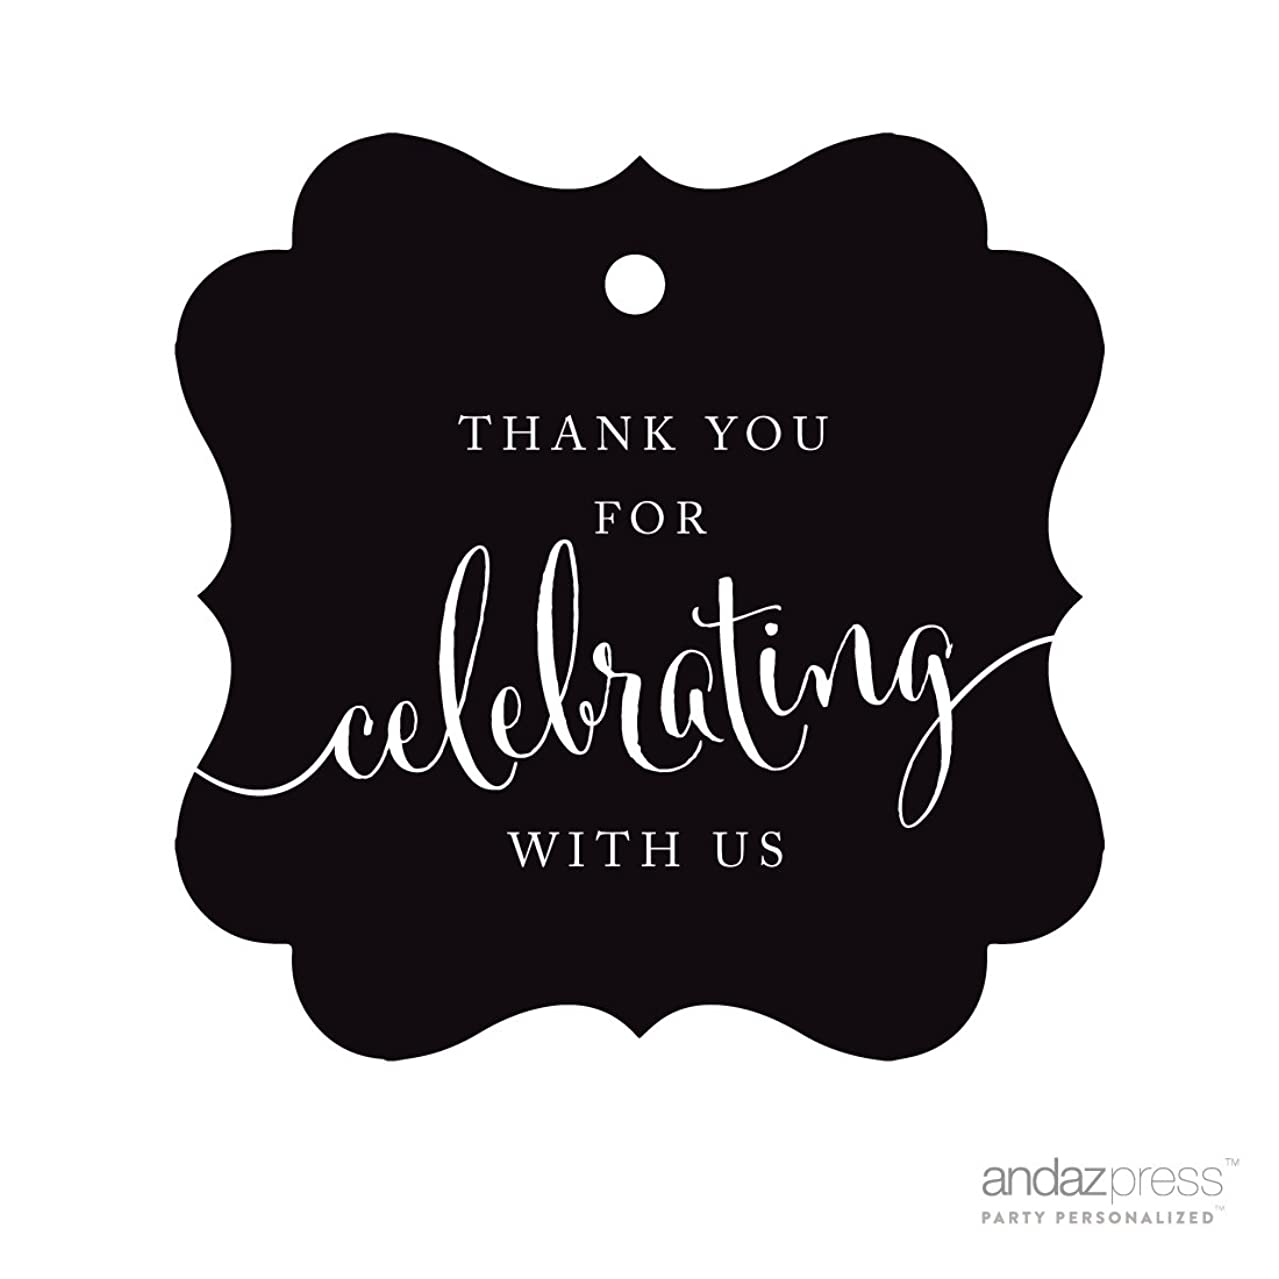 Andaz Press Fancy Frame Gift Tags, Thank You For Celebrating With Us, Black, 24-Pack, For Baby Bridal Wedding Shower, Kids 1st Sweet 16 Quinceanera Birthdays, Anniversary, Graduation, Baptism, Christening, Confirmation, Communion Party Favors, Gifts, Boxes, Bags, Treats and Presents